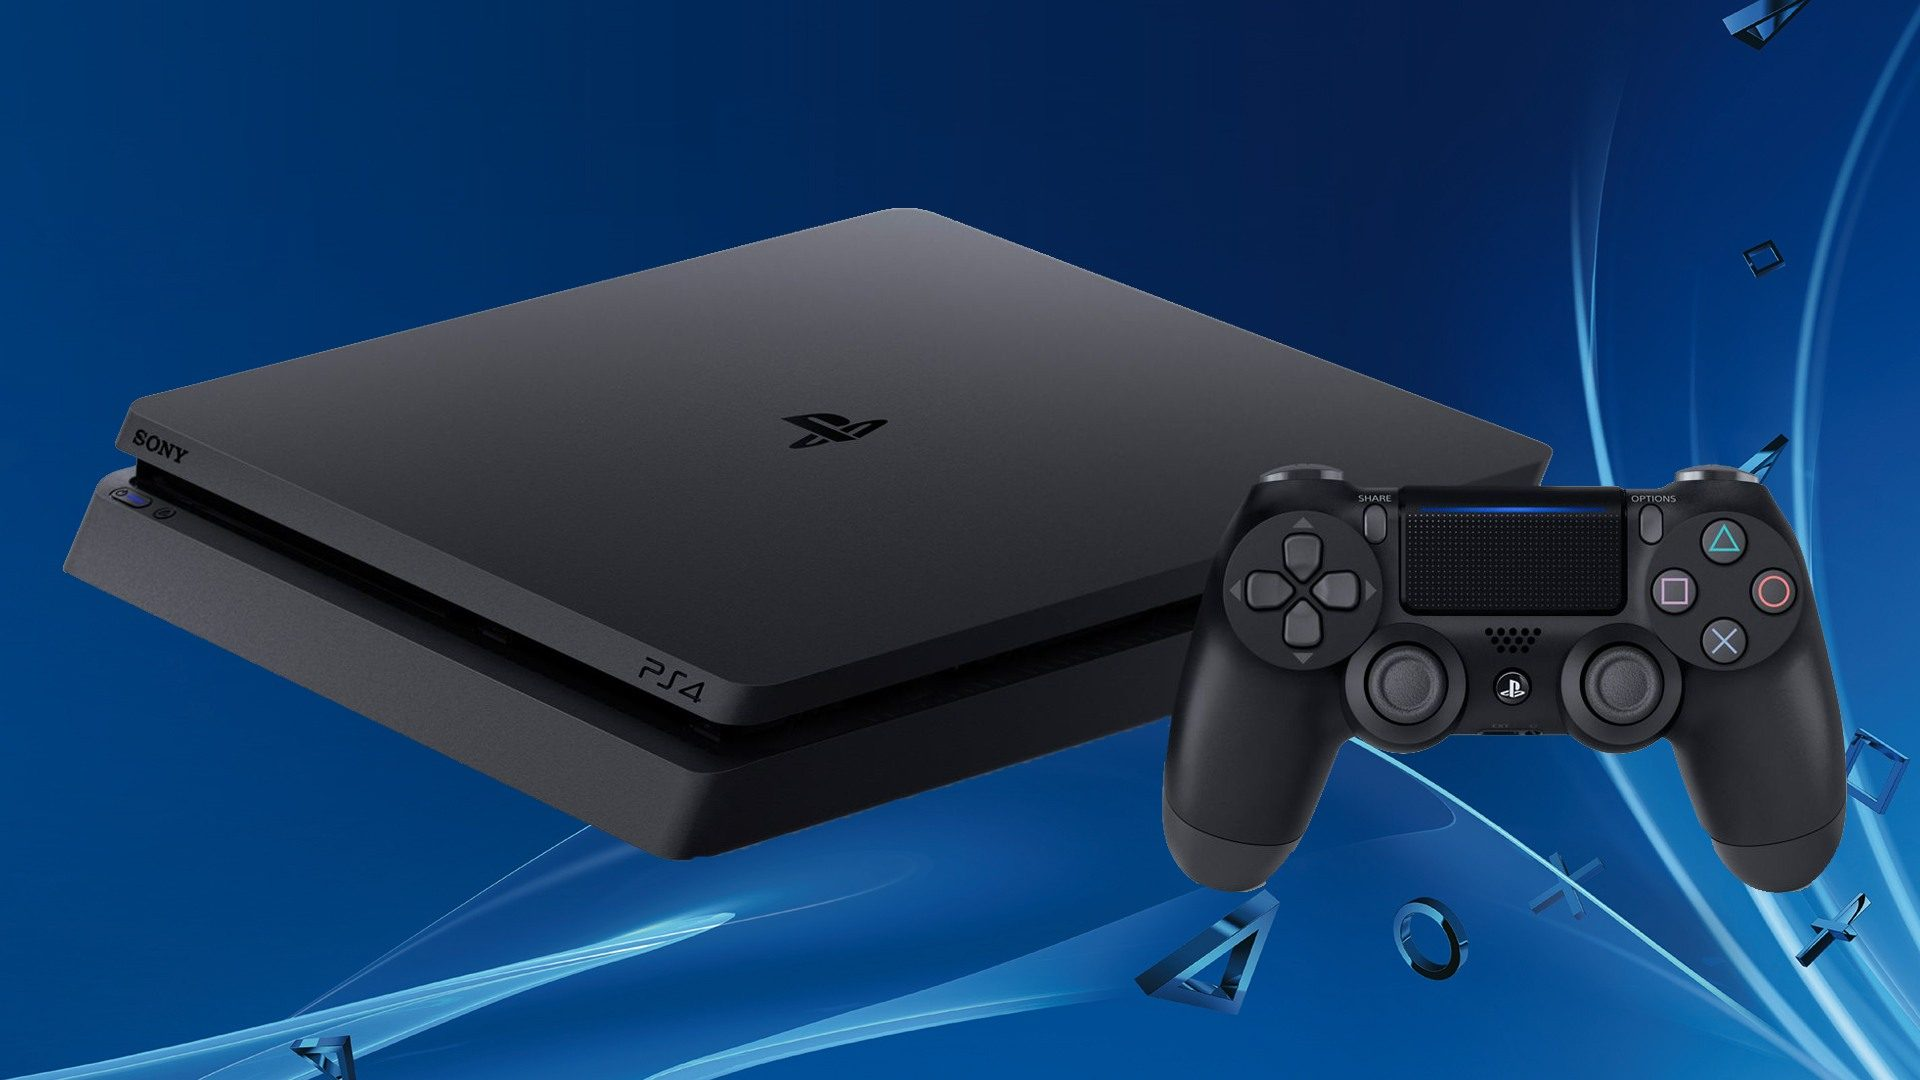 ps4slimconsole-8146137